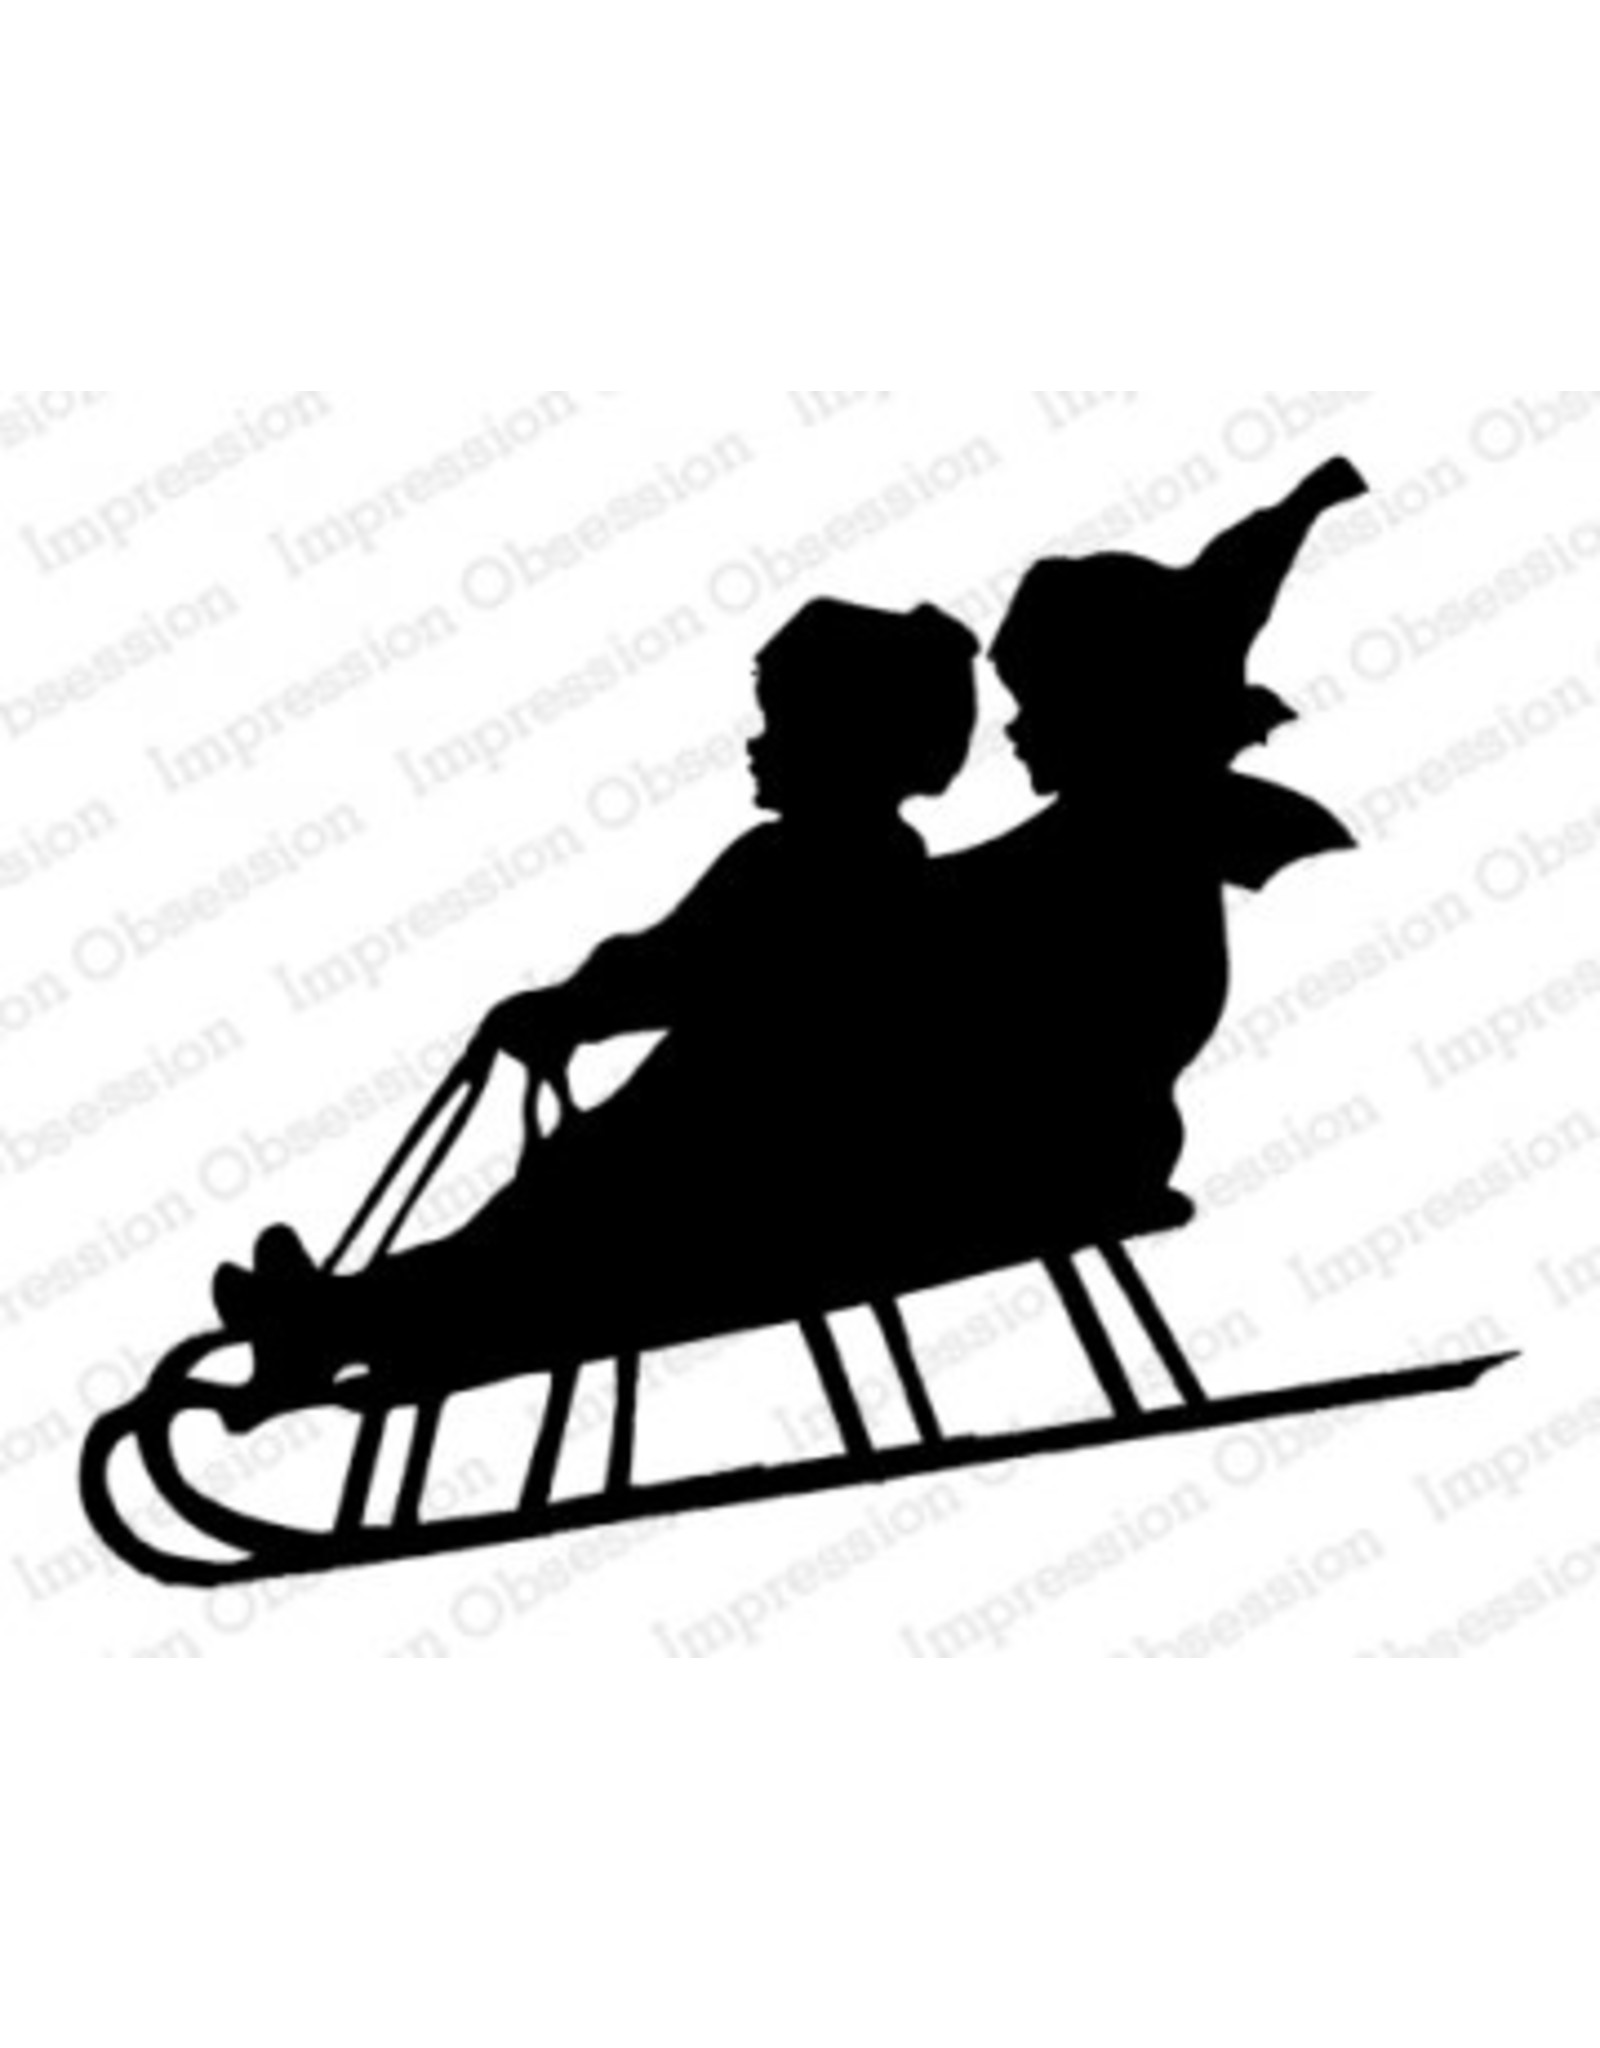 Impression Obsession Sled Silhouette Clling Stamp